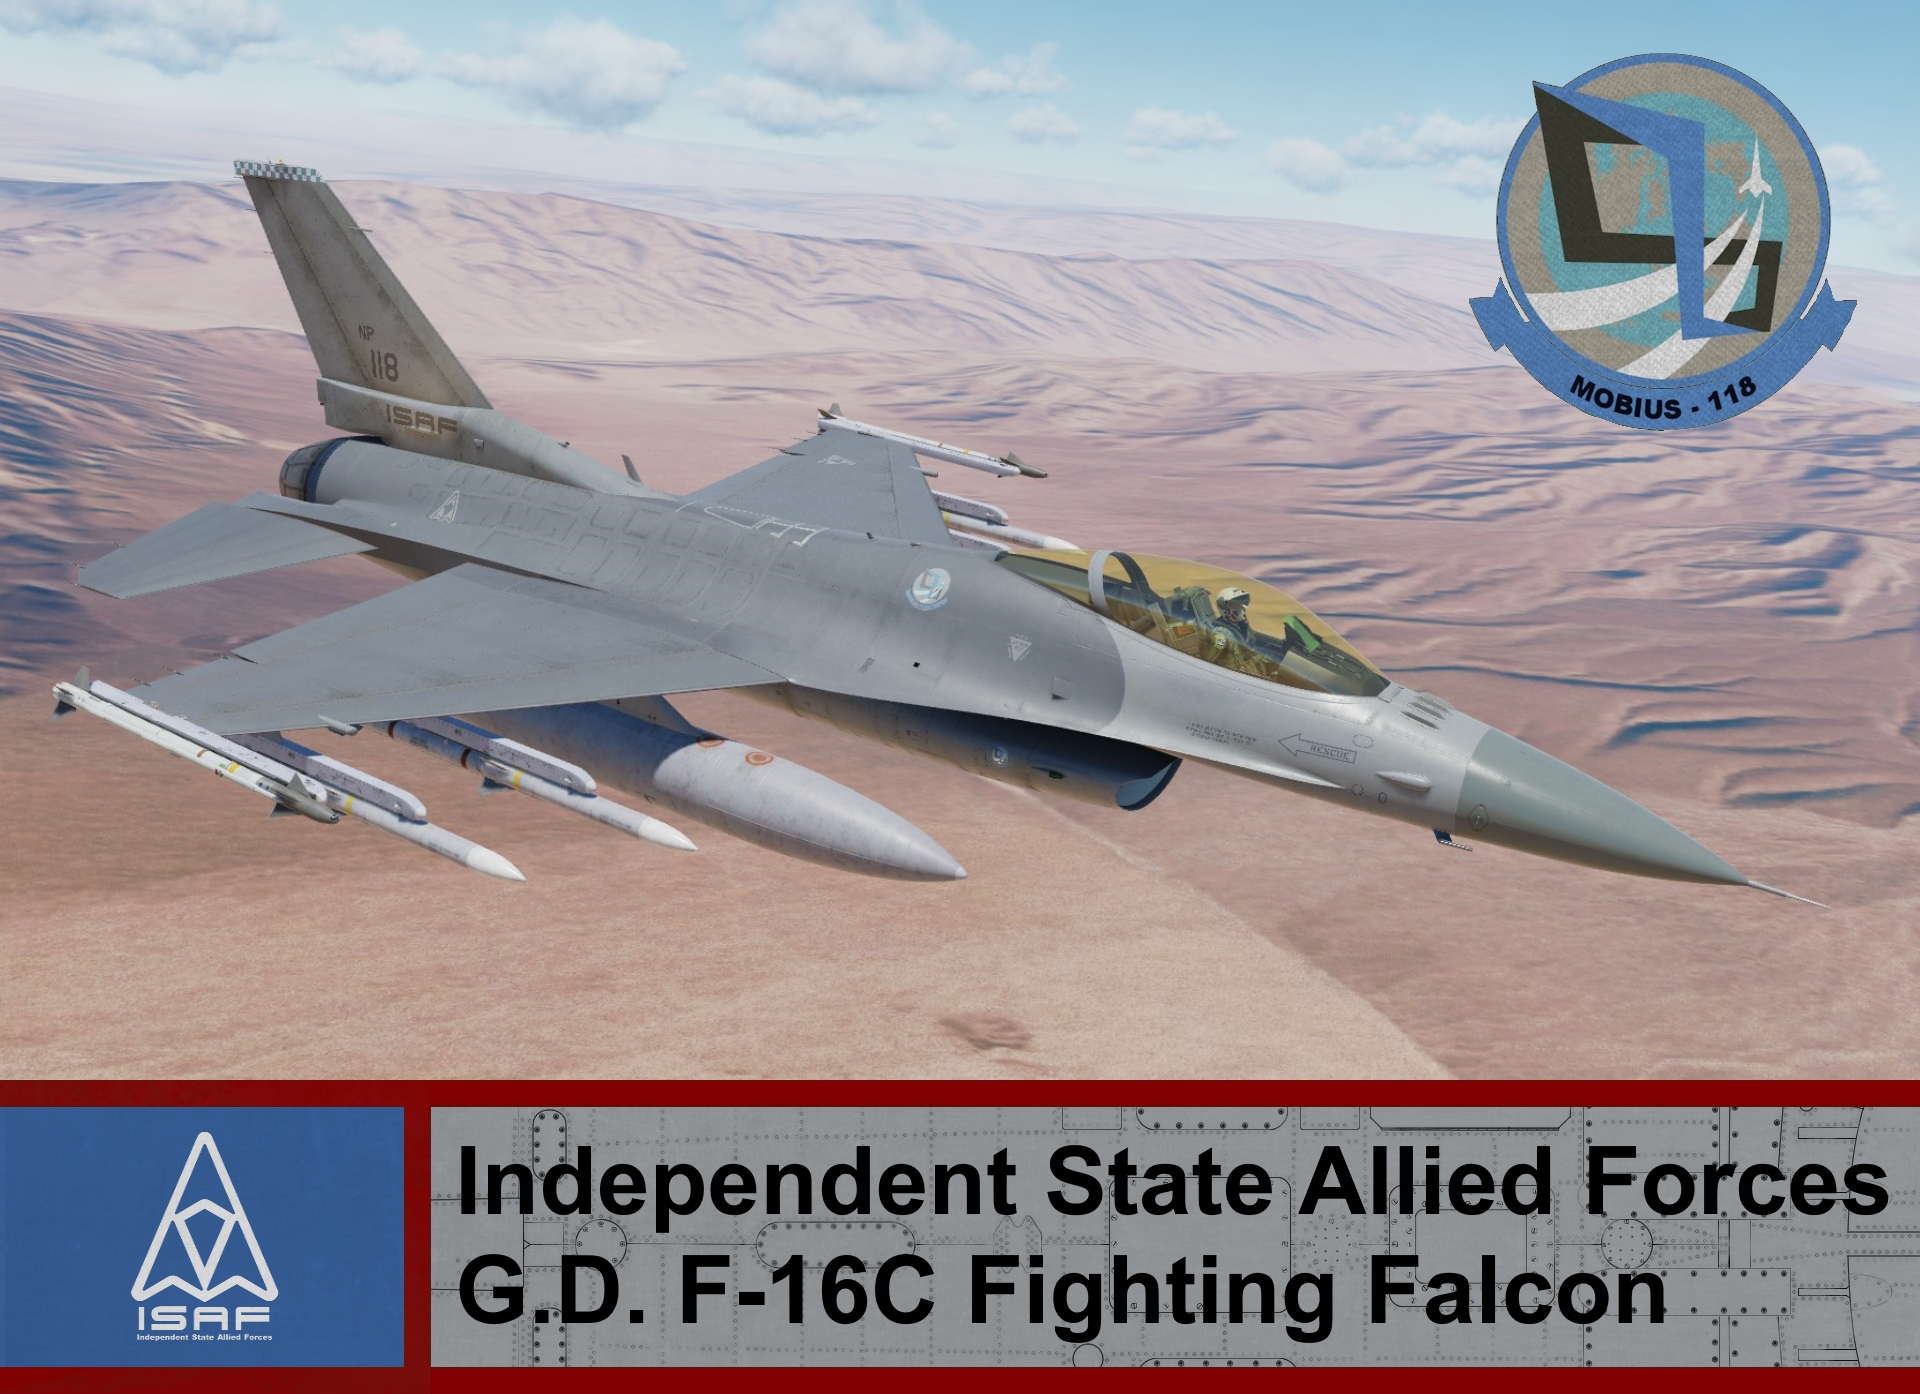 Independent State Allied Forces F-16C Block 50 - Ace Combat 4 (Mobius One)